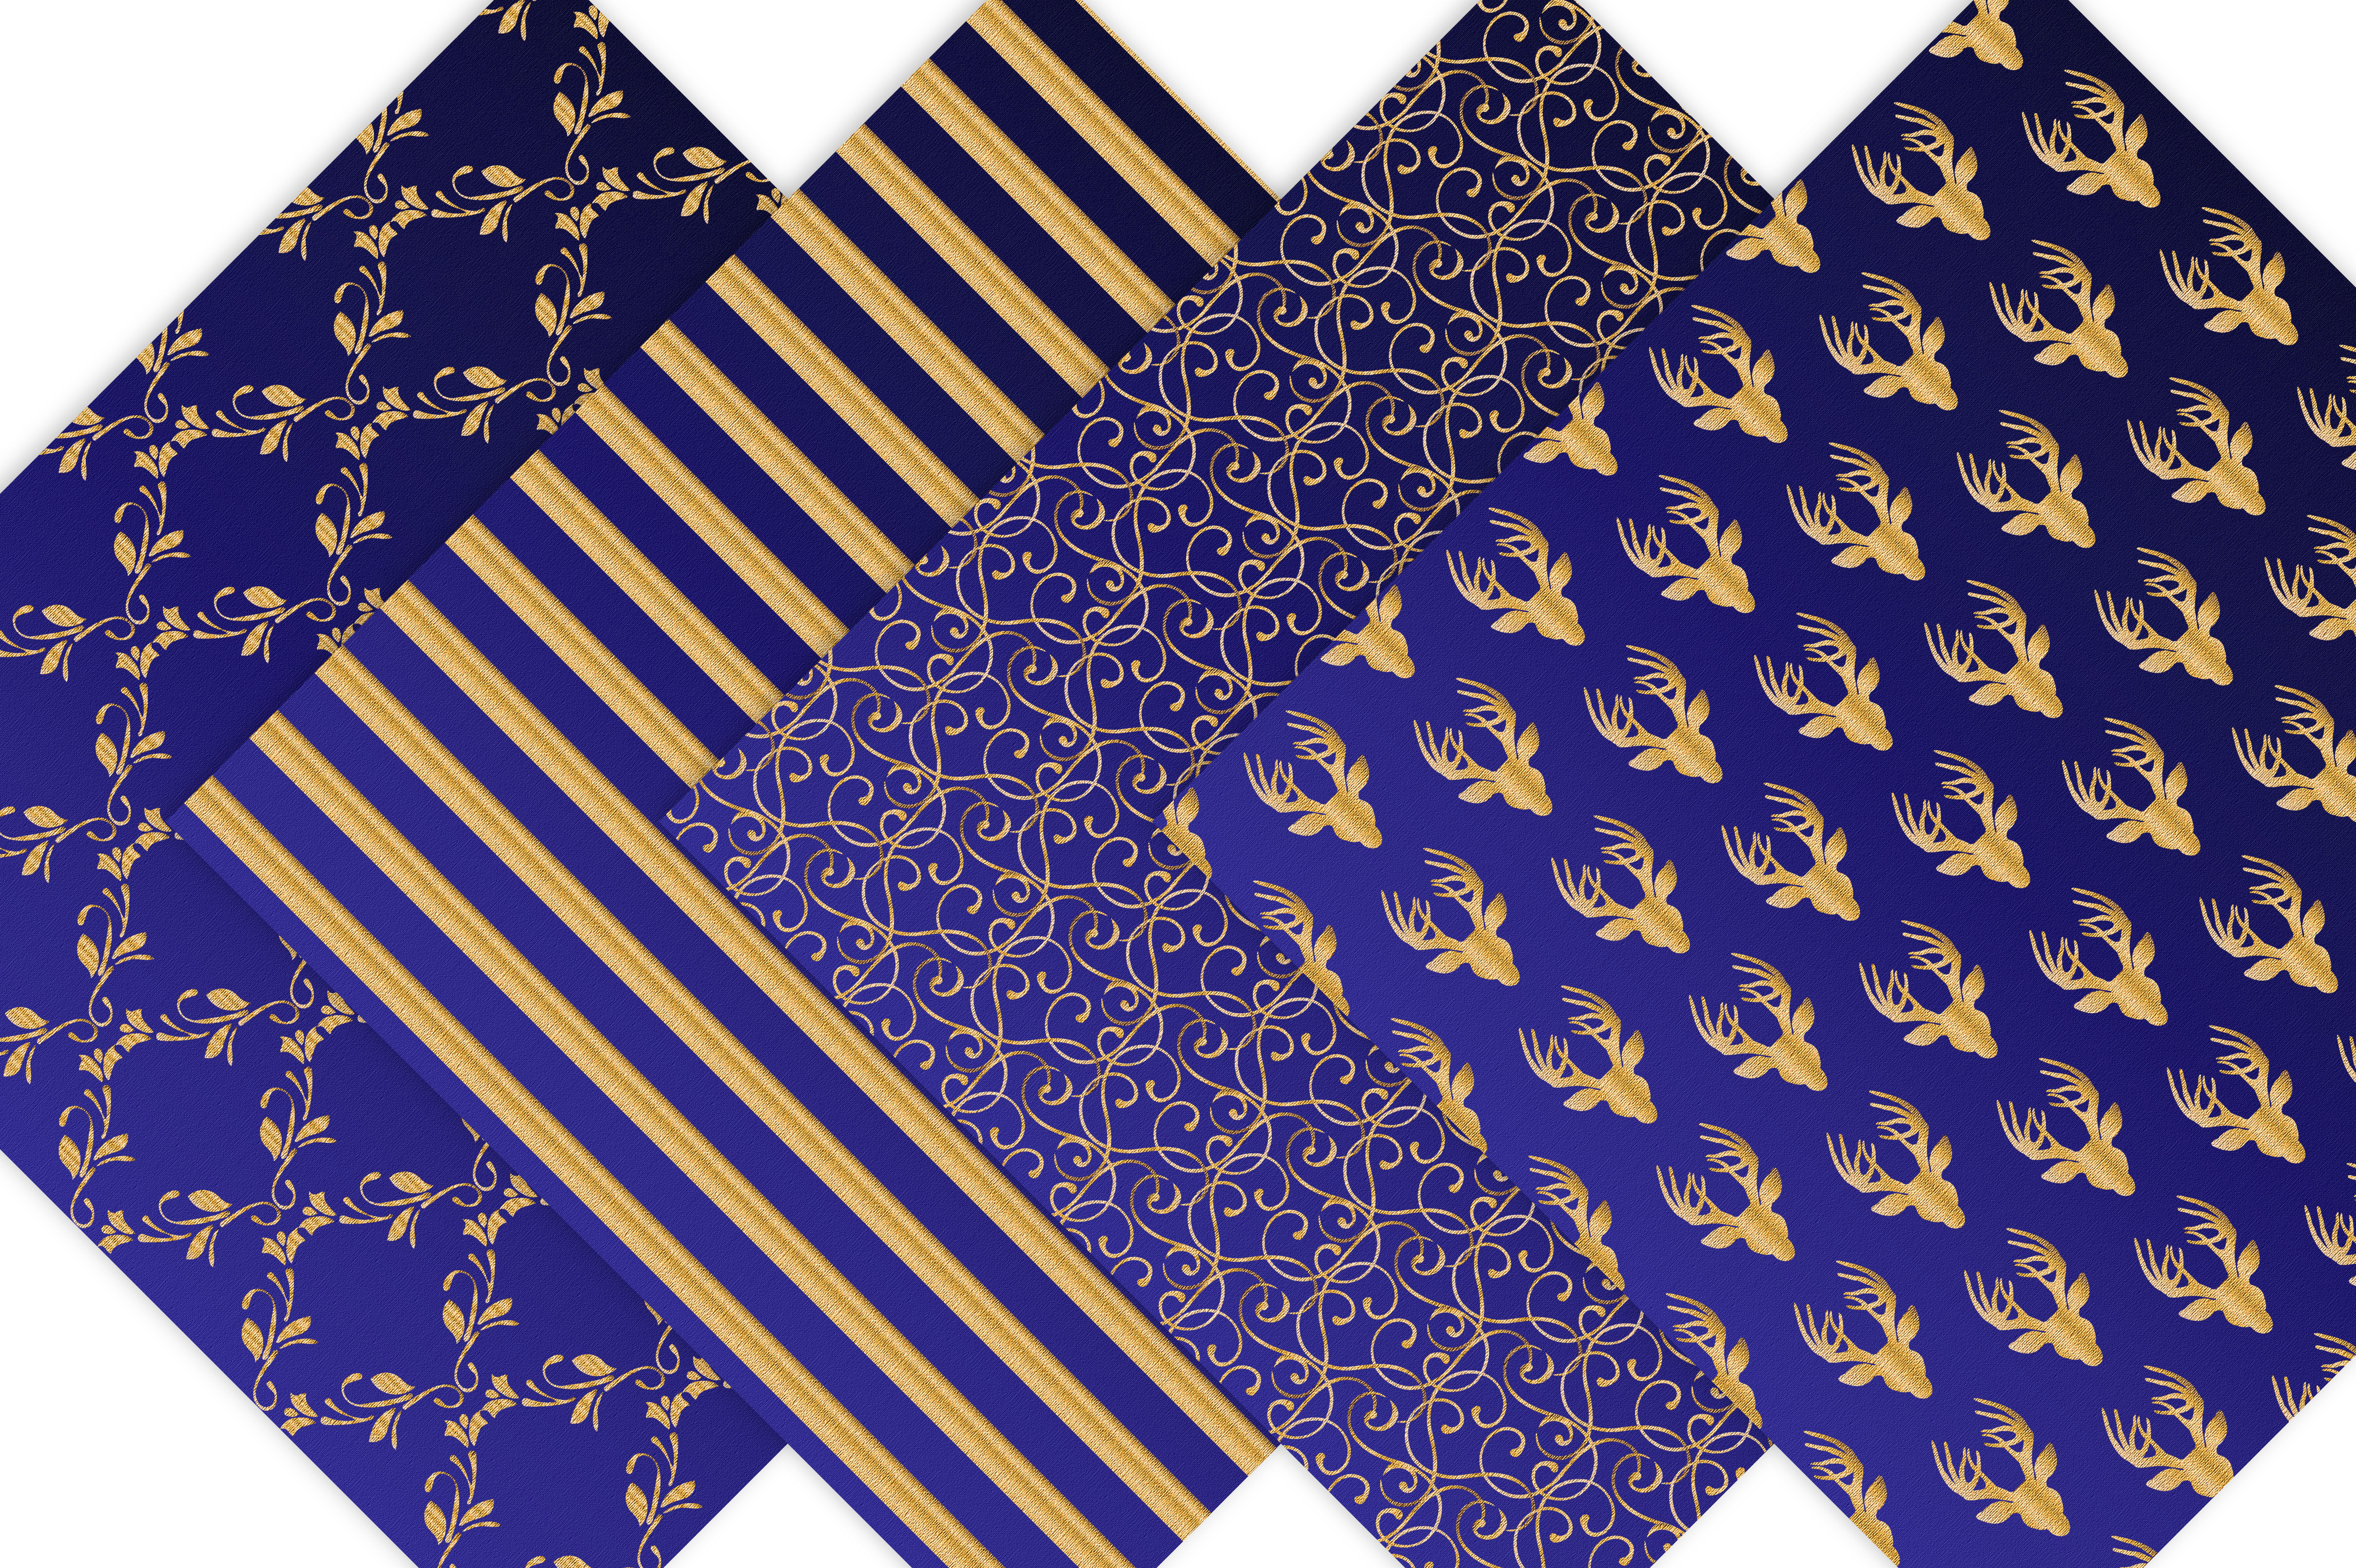 Royal Blue and Gold Digital Backgrounds example image 7